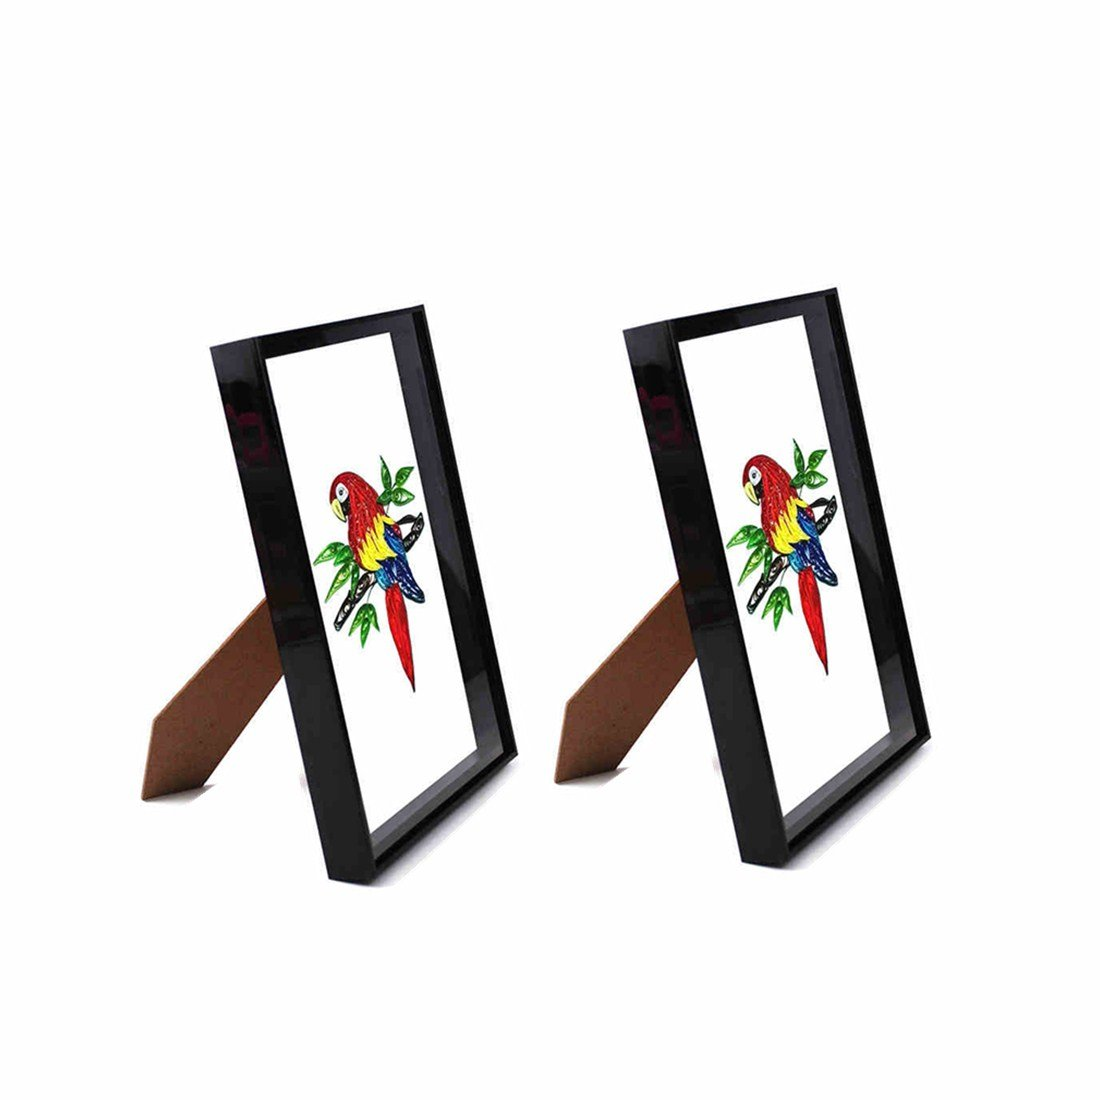 YURROAD A4 Photo Frame for Paper Quilling Crafts Handmade Artworks Display on Desktop or Hang (Black,2 Pack) ... by YURROAD